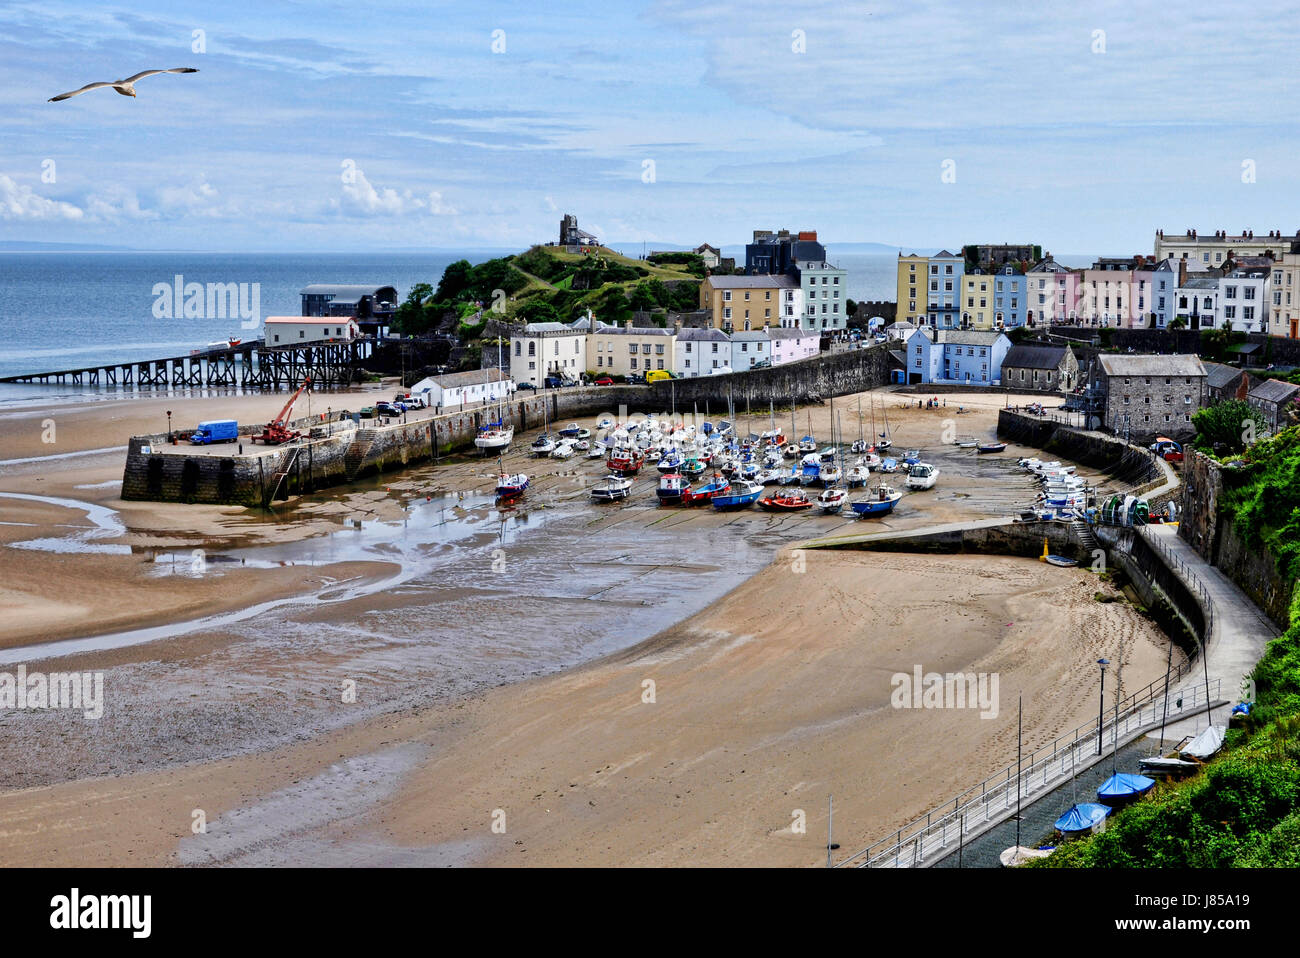 Tenby Harbour, Wales, UK. - Stock Image